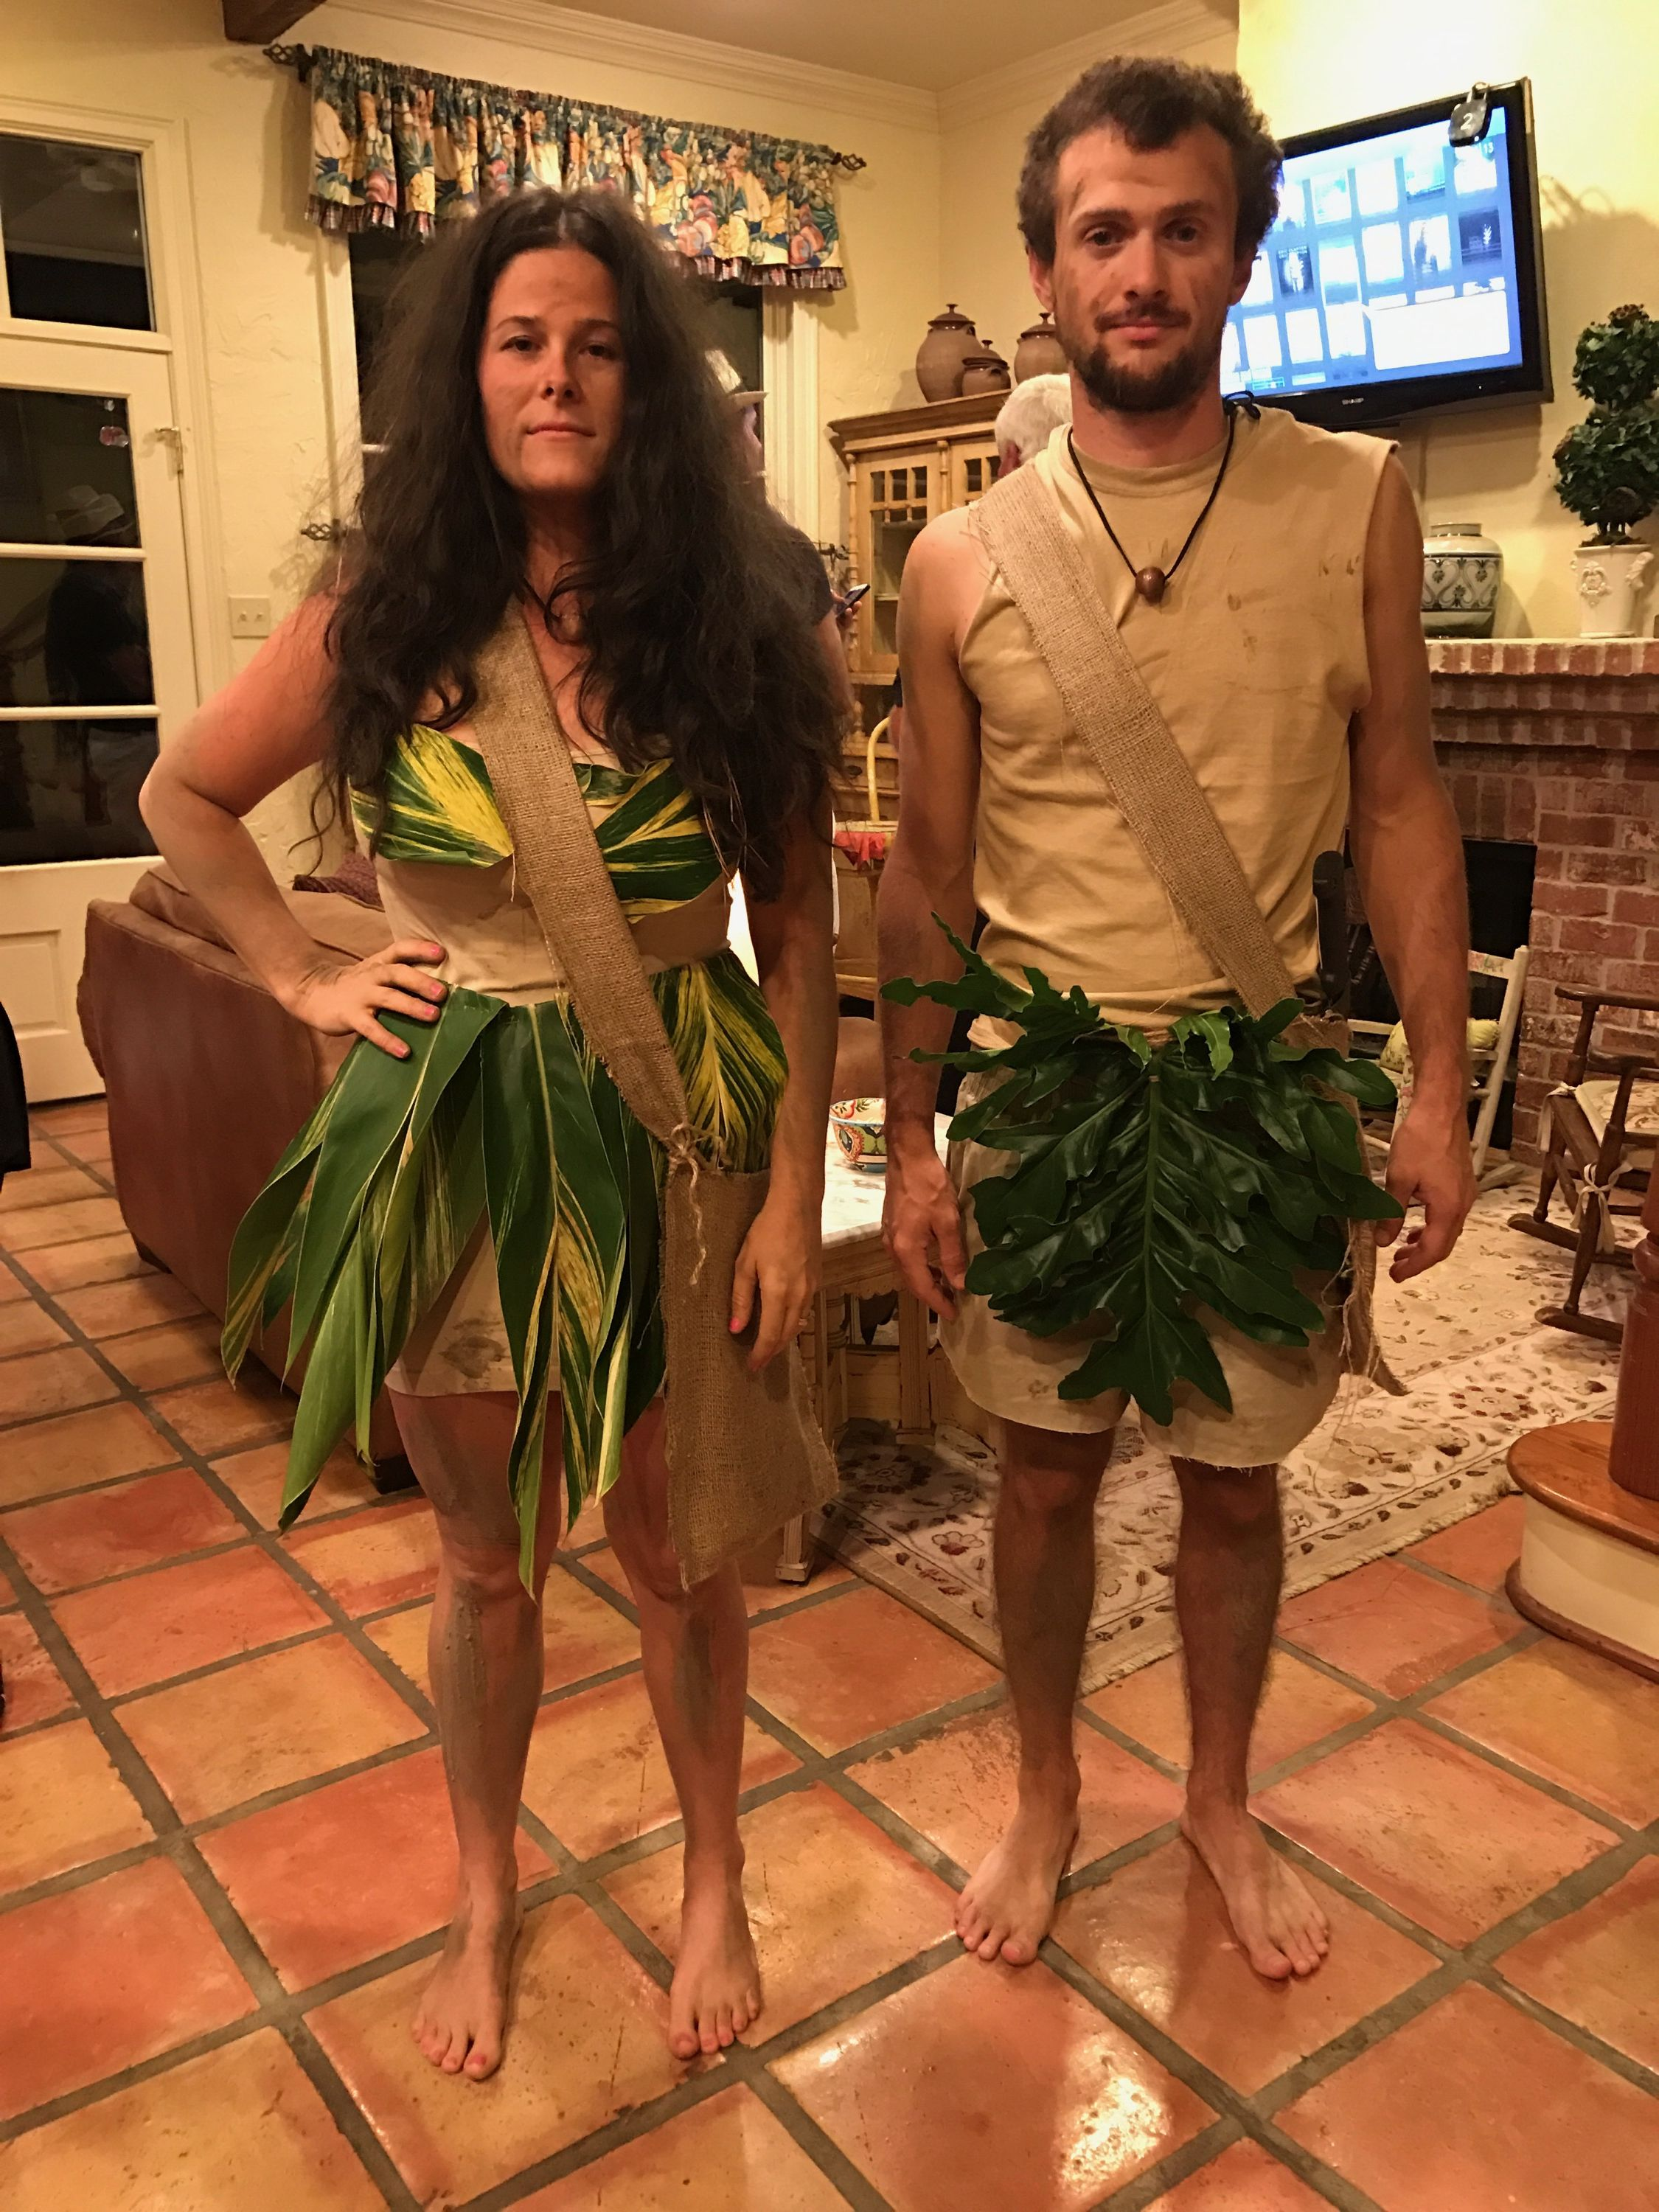 Naked flasher halloween costume women apologise, but